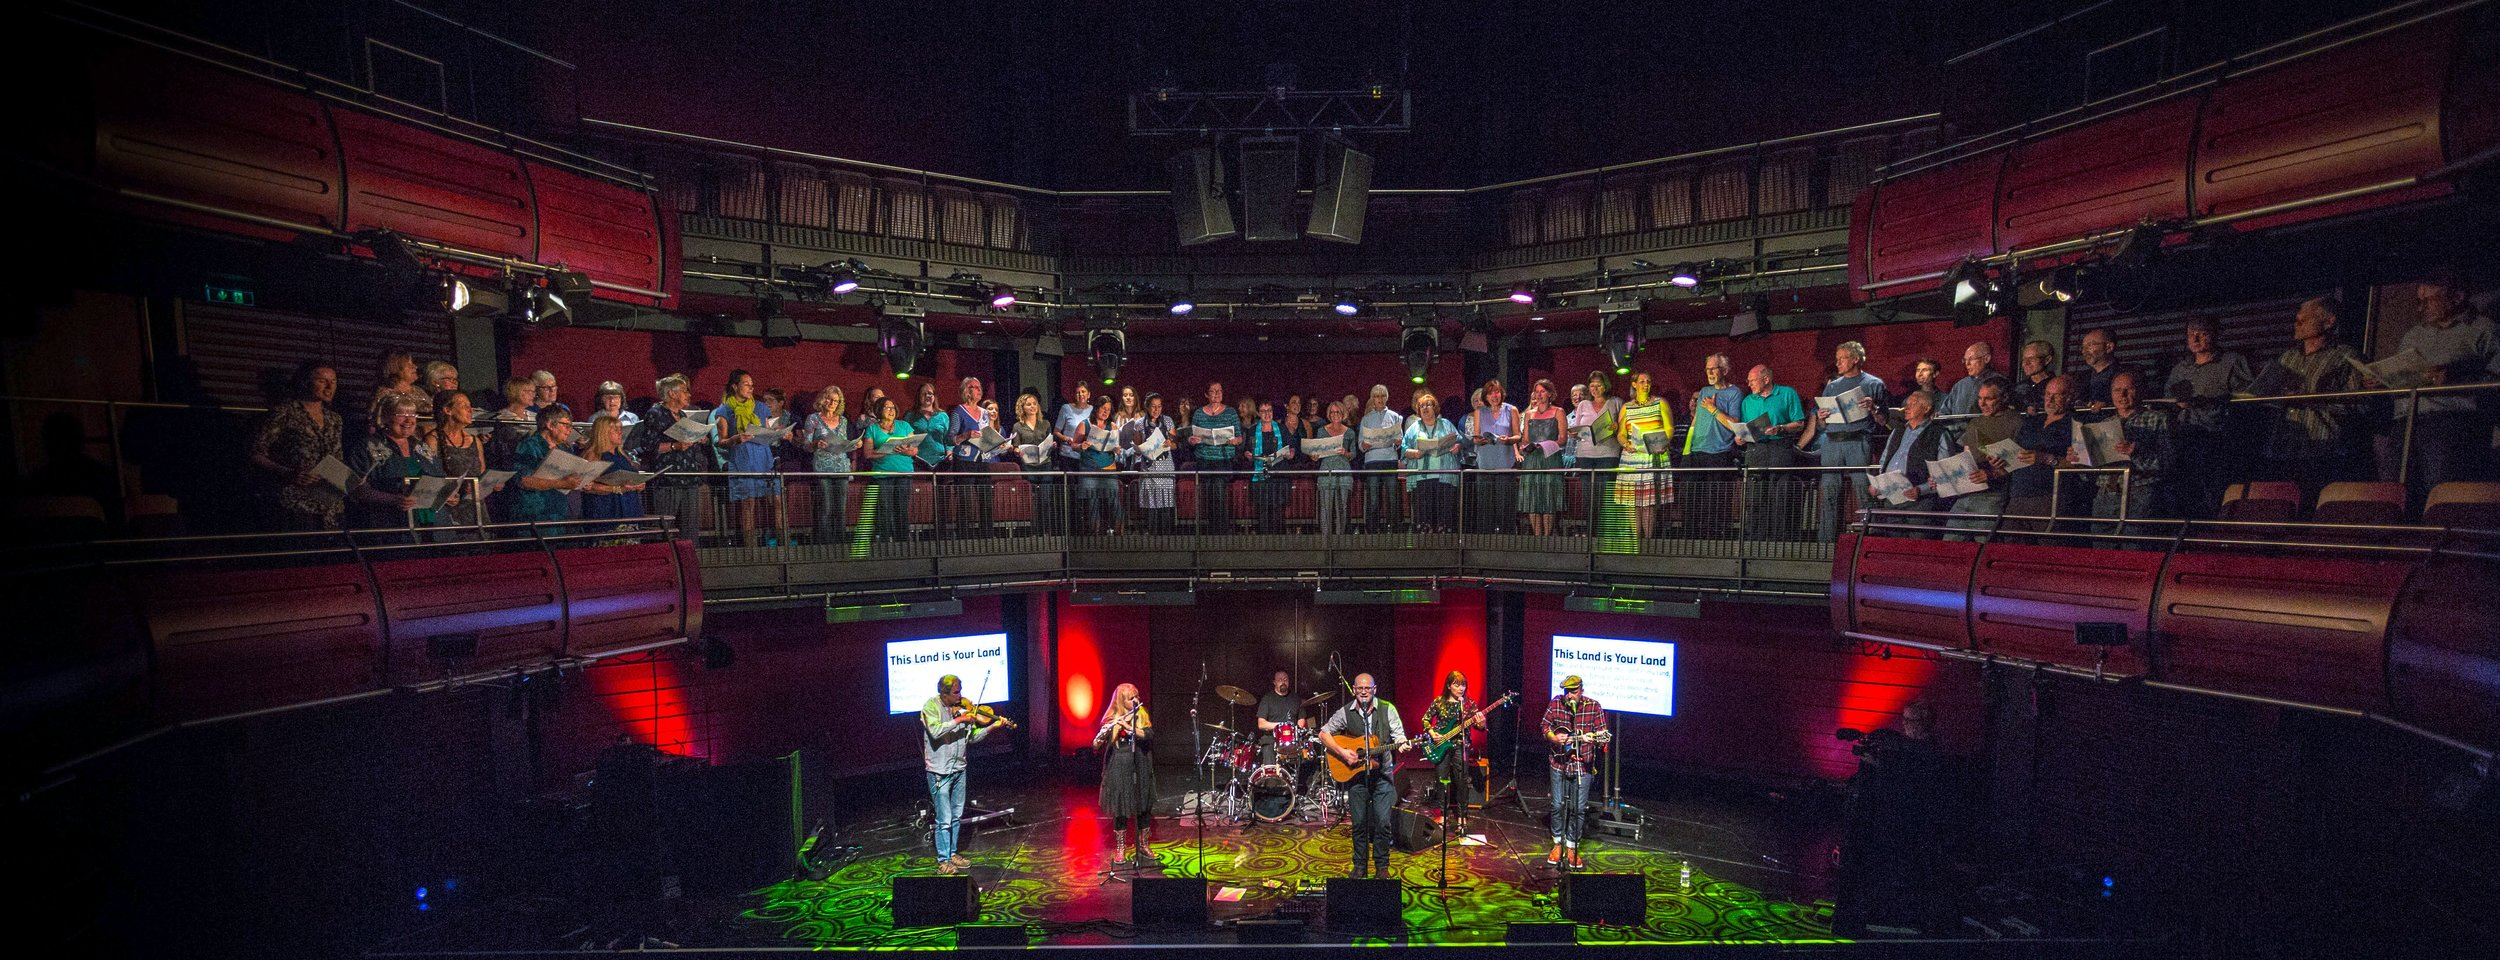 Sing Owt! and Voicebeat perform at Sage Gateshead with Tryckster in July 2017 'Coast to Coast' event